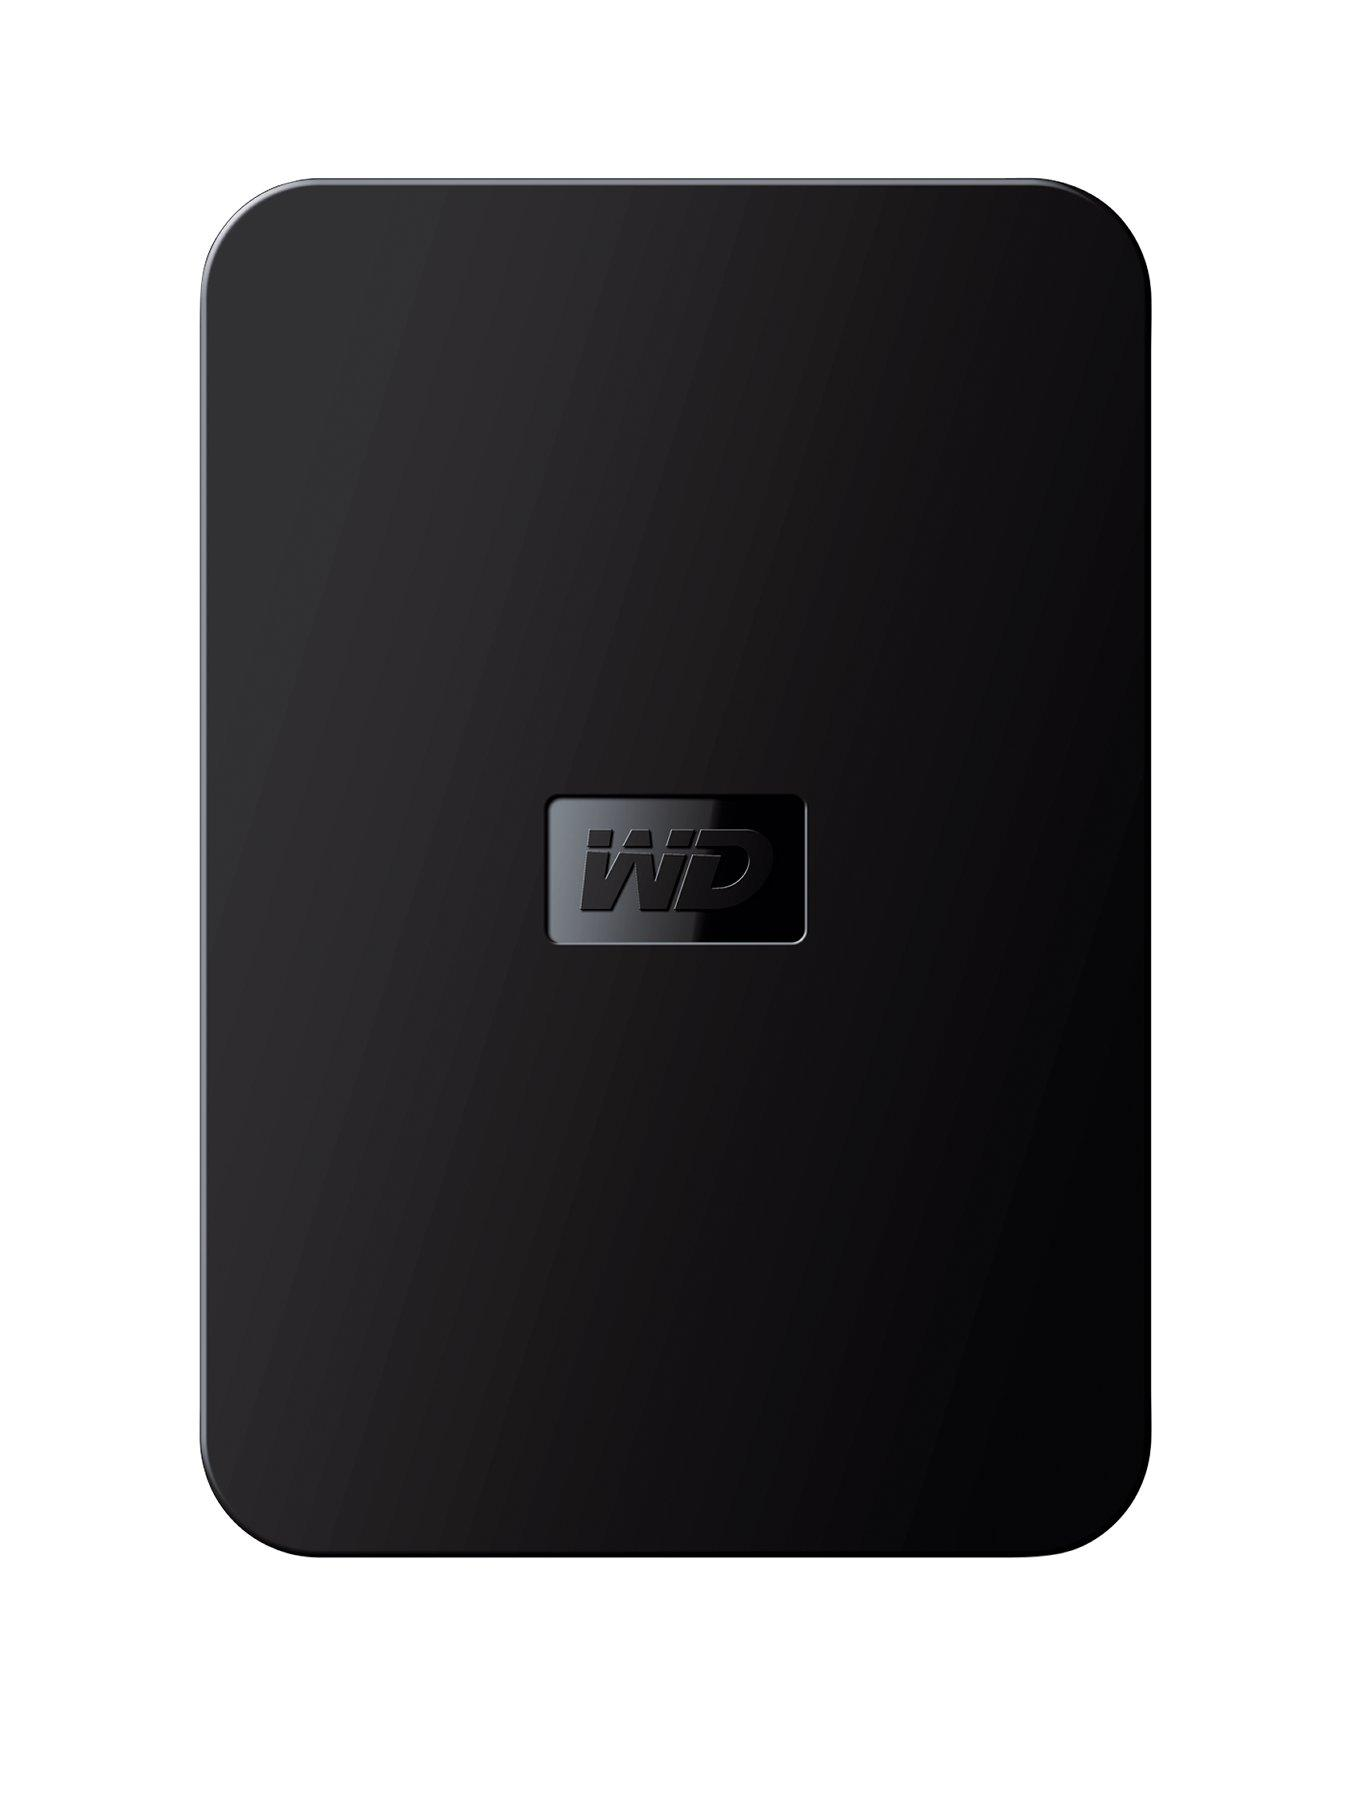 Western Digital Elements 1Tb Portable Hard Drive - Black